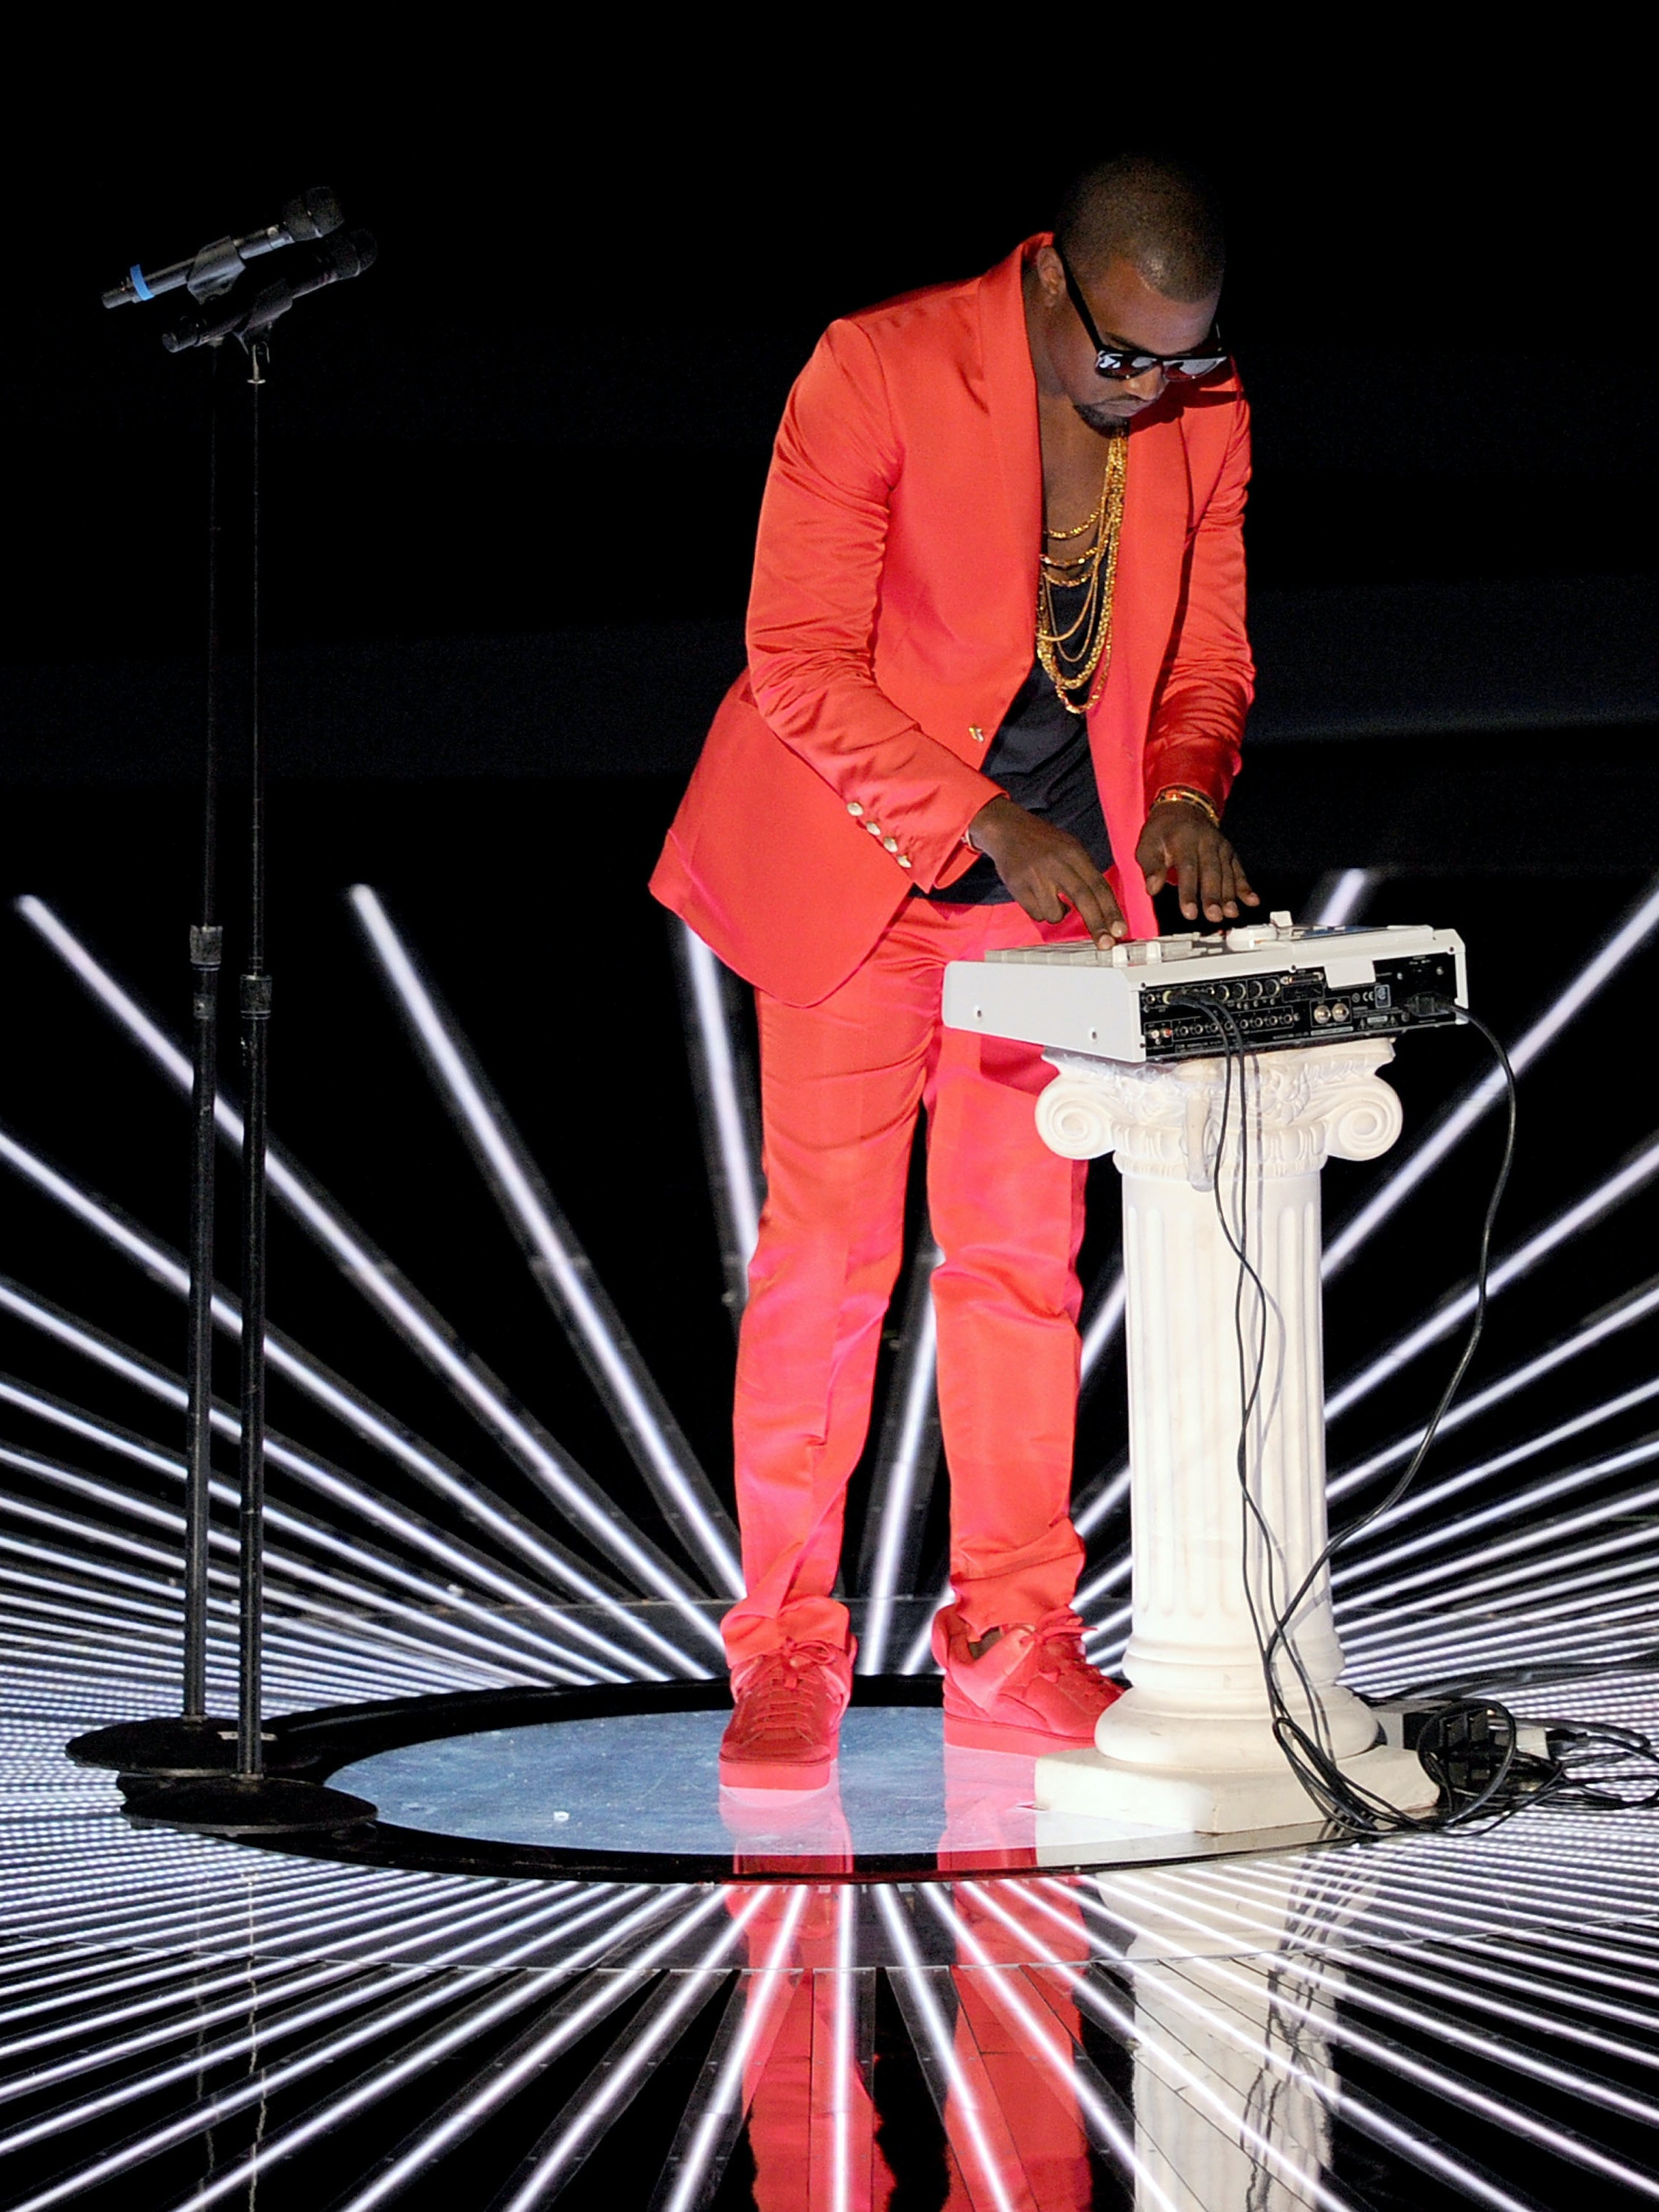 LOS ANGELES, CA - SEPTEMBER 12: Rapper Kanye West performs onstage during the 2010 MTV Video Music Awards at NOKIA Theatre L.A. LIVE on September 12, 2010 in Los Angeles, California.  (Photo by Kevin Winter/Getty Images)